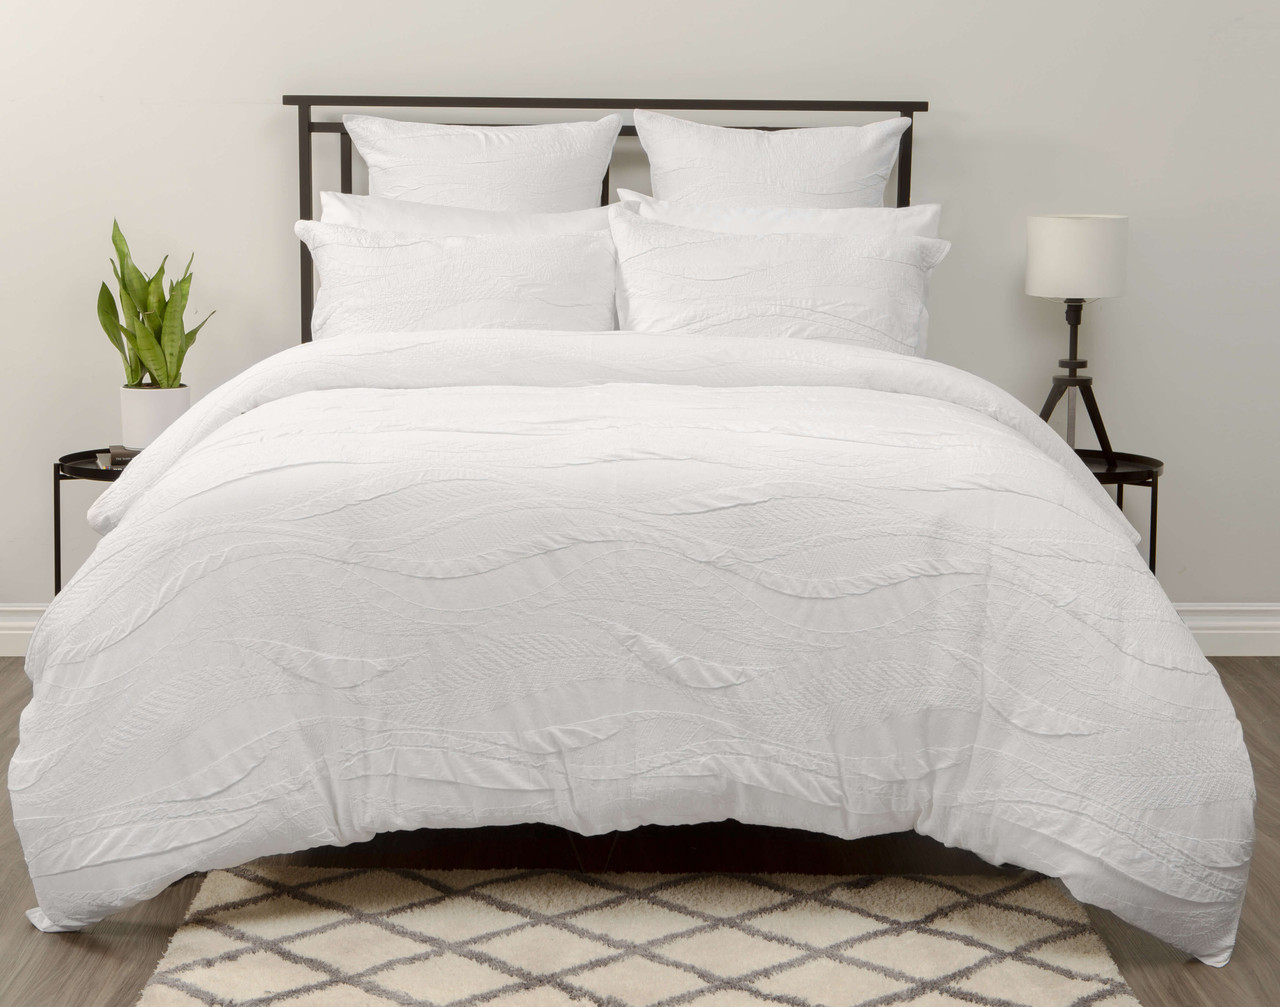 Anira features etched tribal leaves woven in a raised matelassé pattern in white.